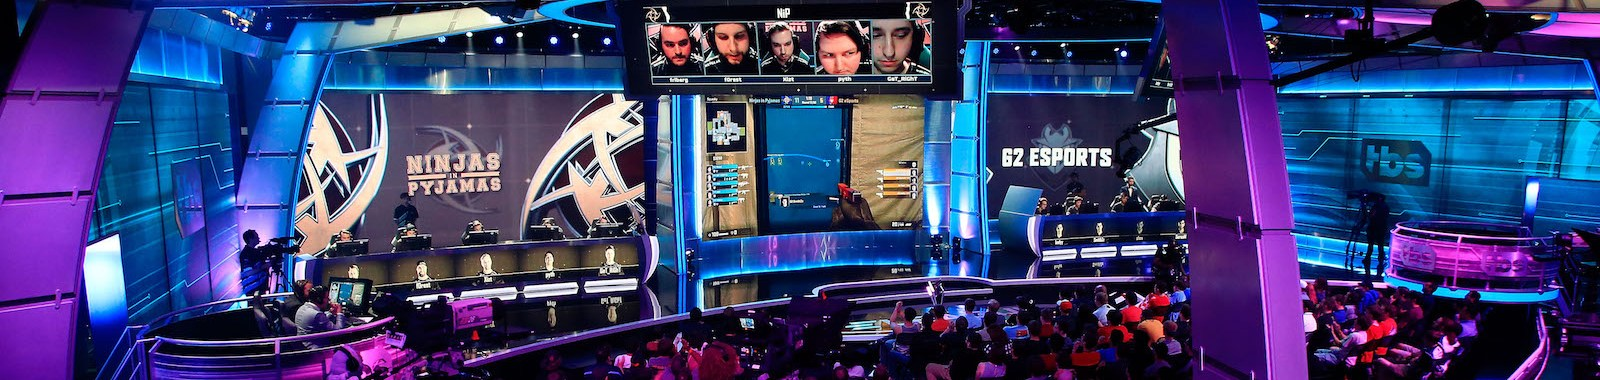 ATLANTA, GA - JUNE 03: A general view of action between Ninjas in Pyjamas and G2 Esports at the ELeague Arena at Turner Studios on June 3, 2016 in Atlanta, Georgia. (Photo by Daniel Shirey/Getty Images)